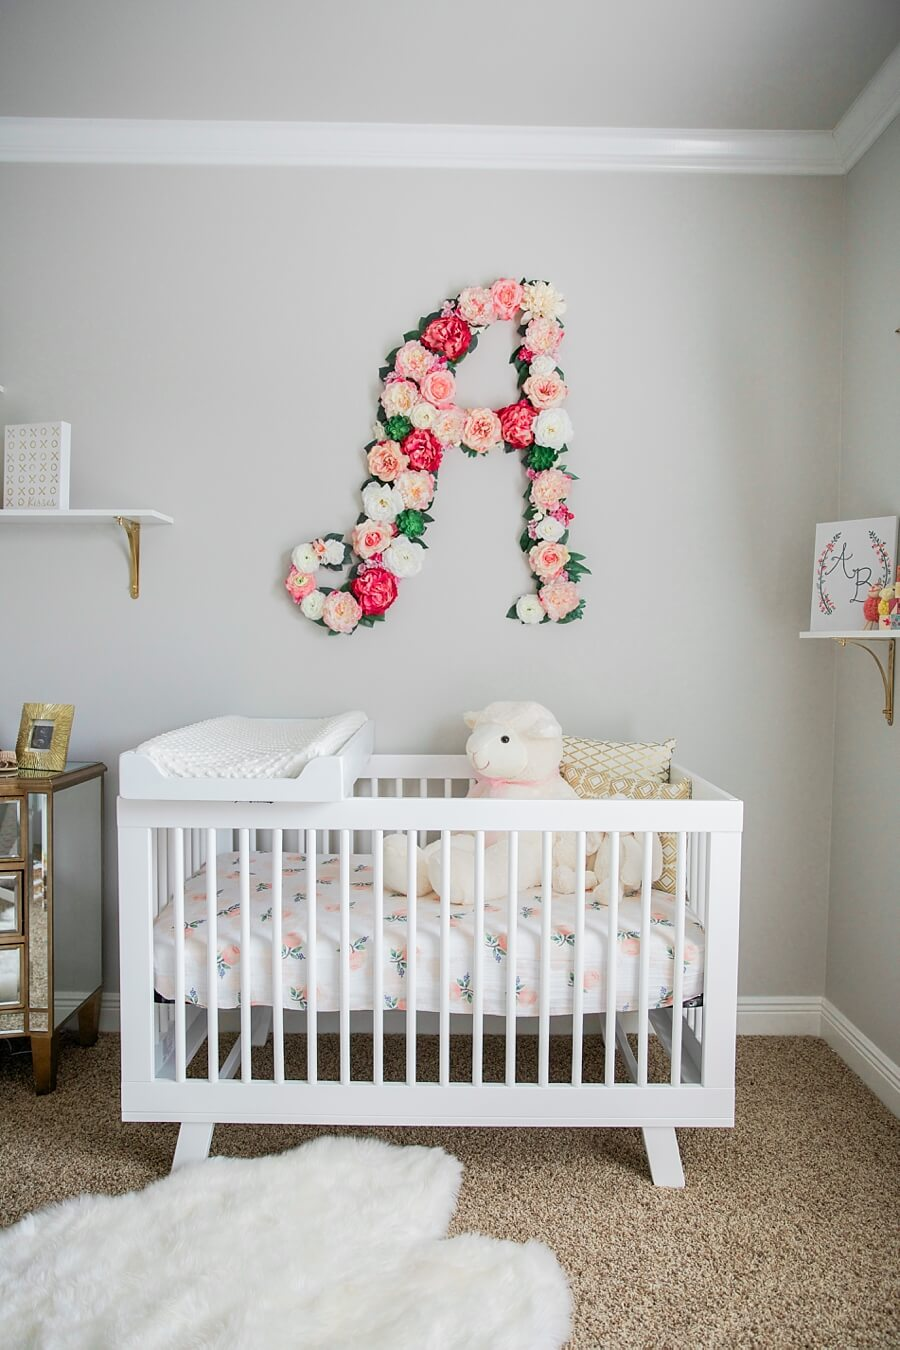 Design Of Baby Room: 35+ Best Nursery Decor Ideas And Designs For 2020